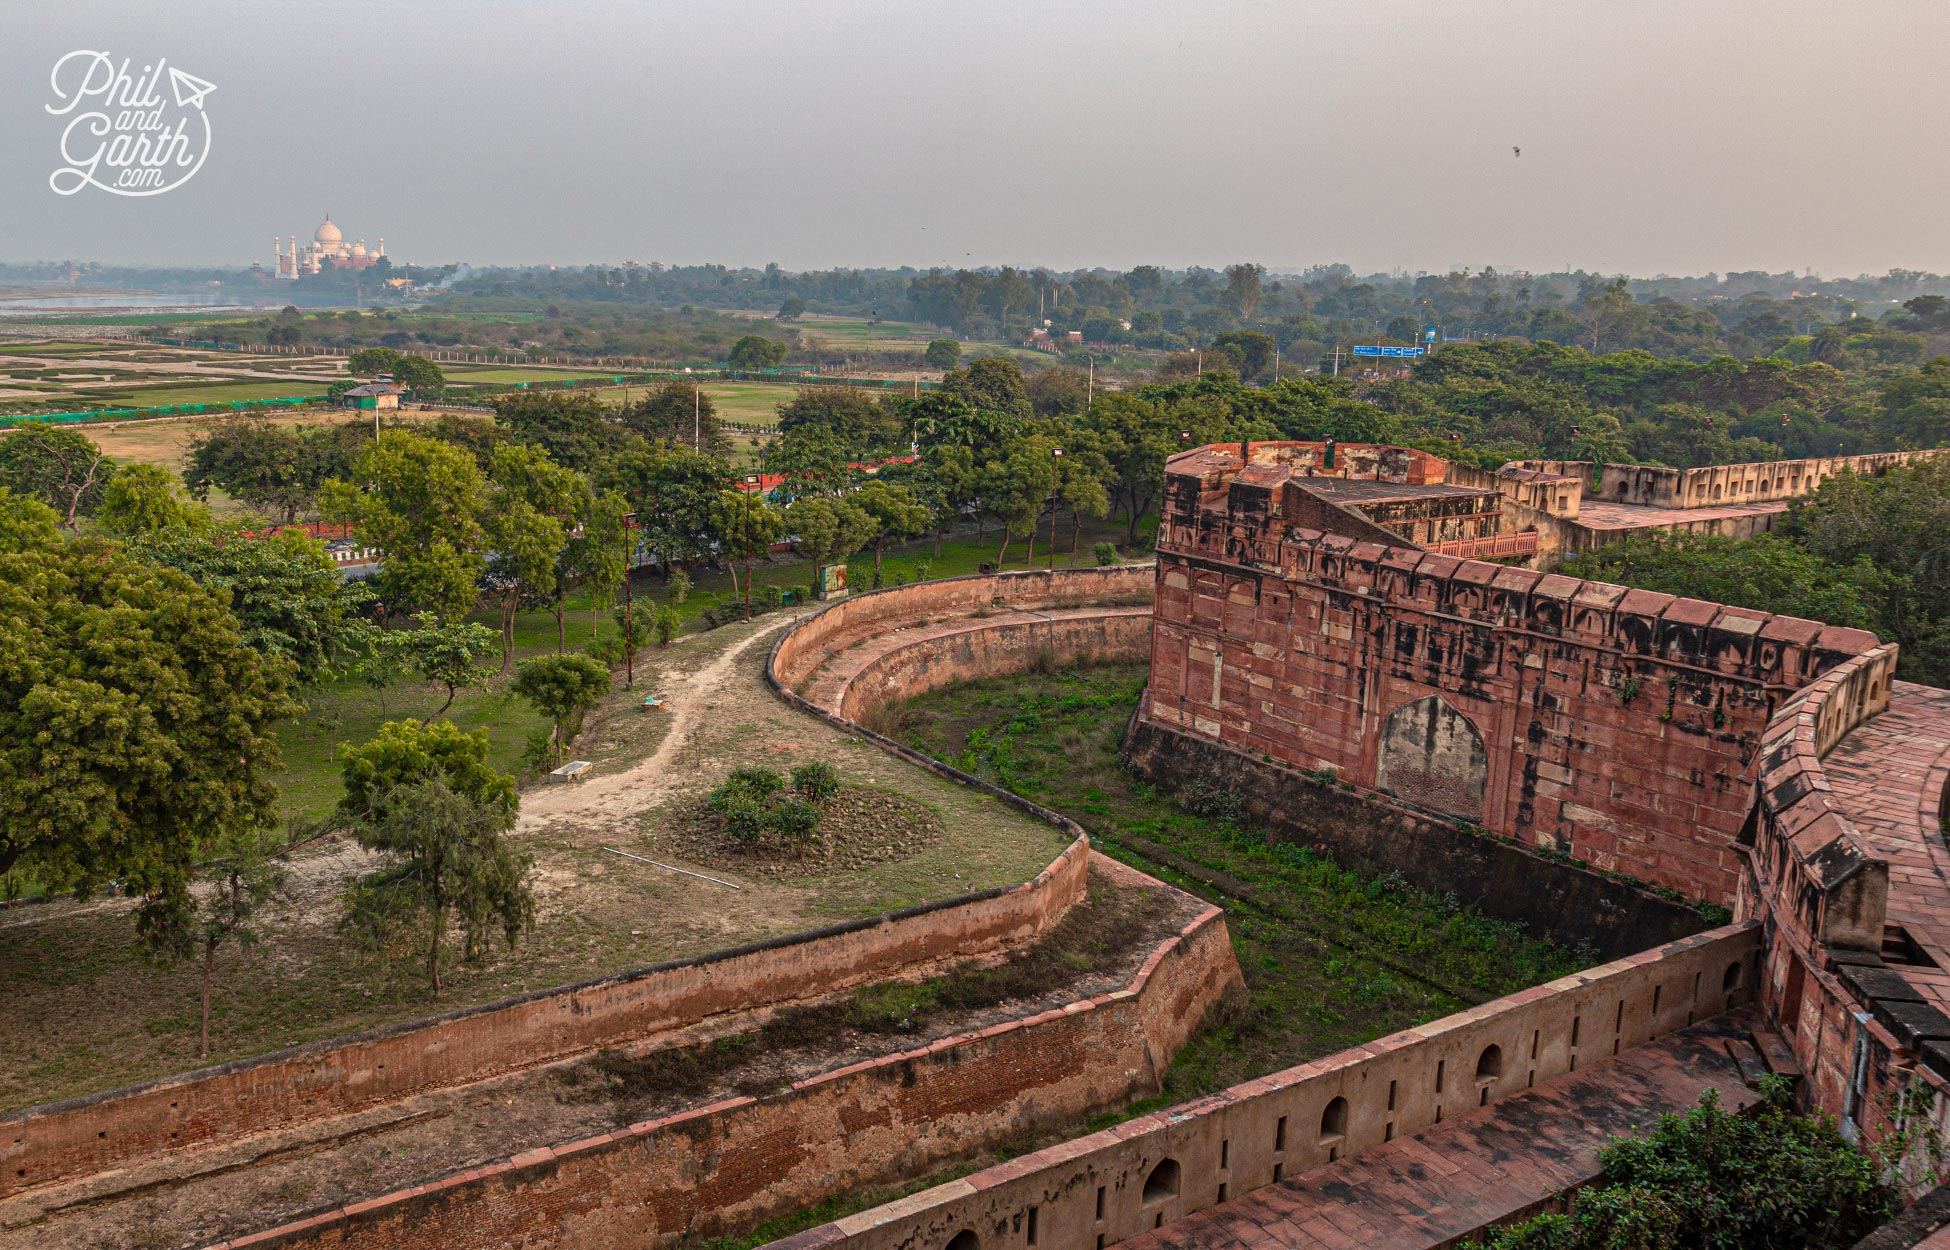 This is the view across to the Taj Mahal from Agra Fort